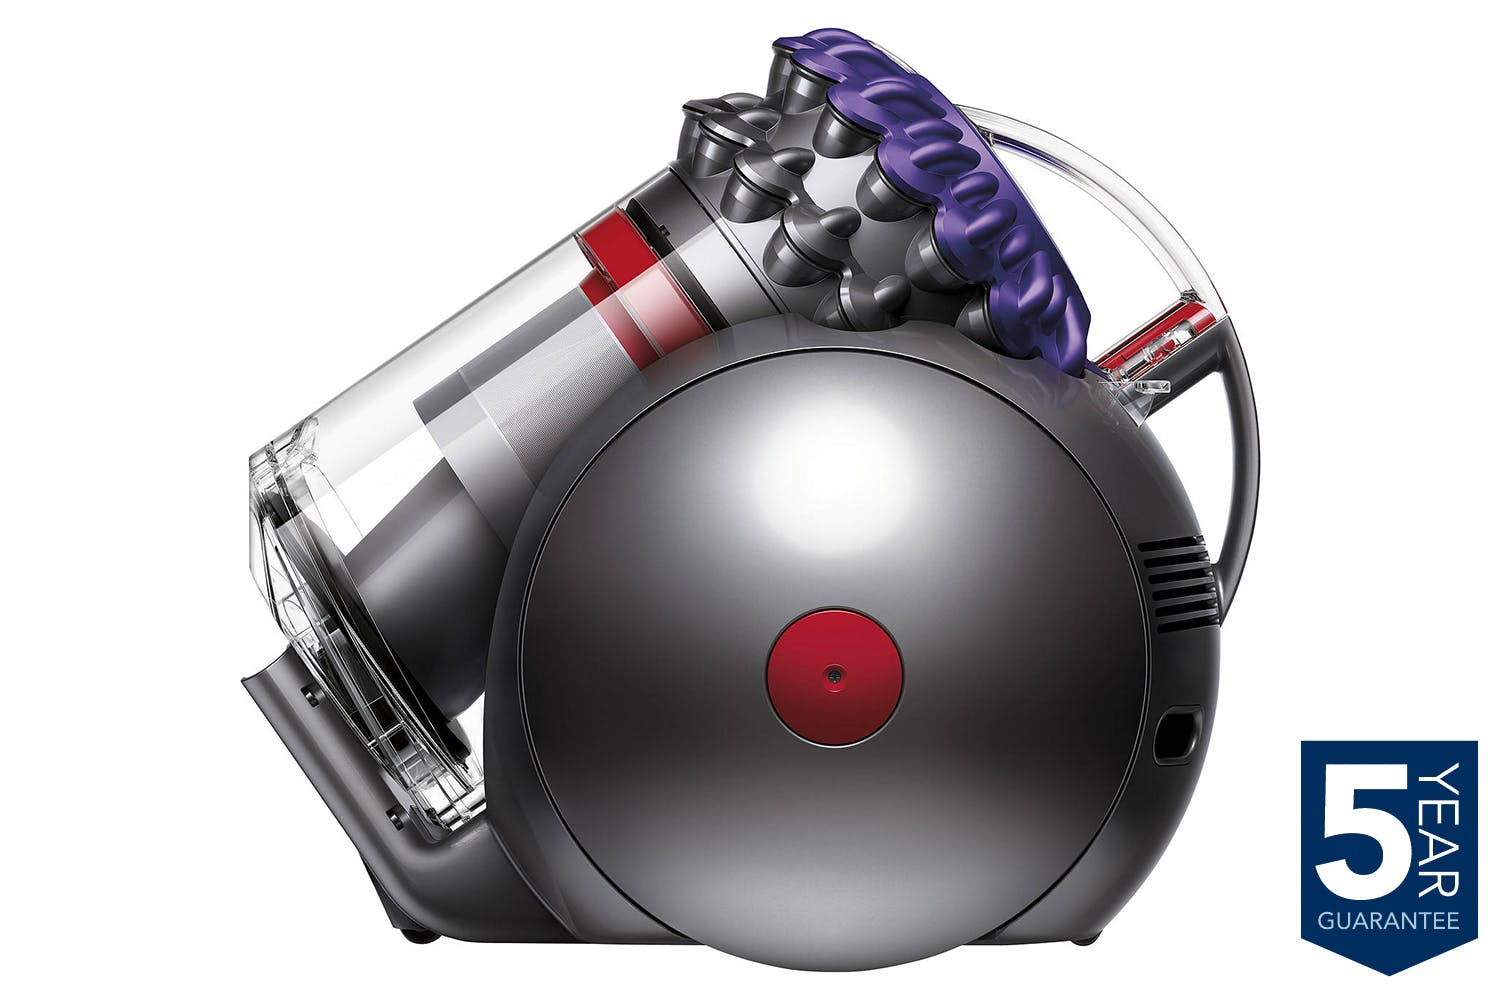 Dyson Big Ball Animal 2 Cylinder Bagless Vacuum Cleaner | 228563-01